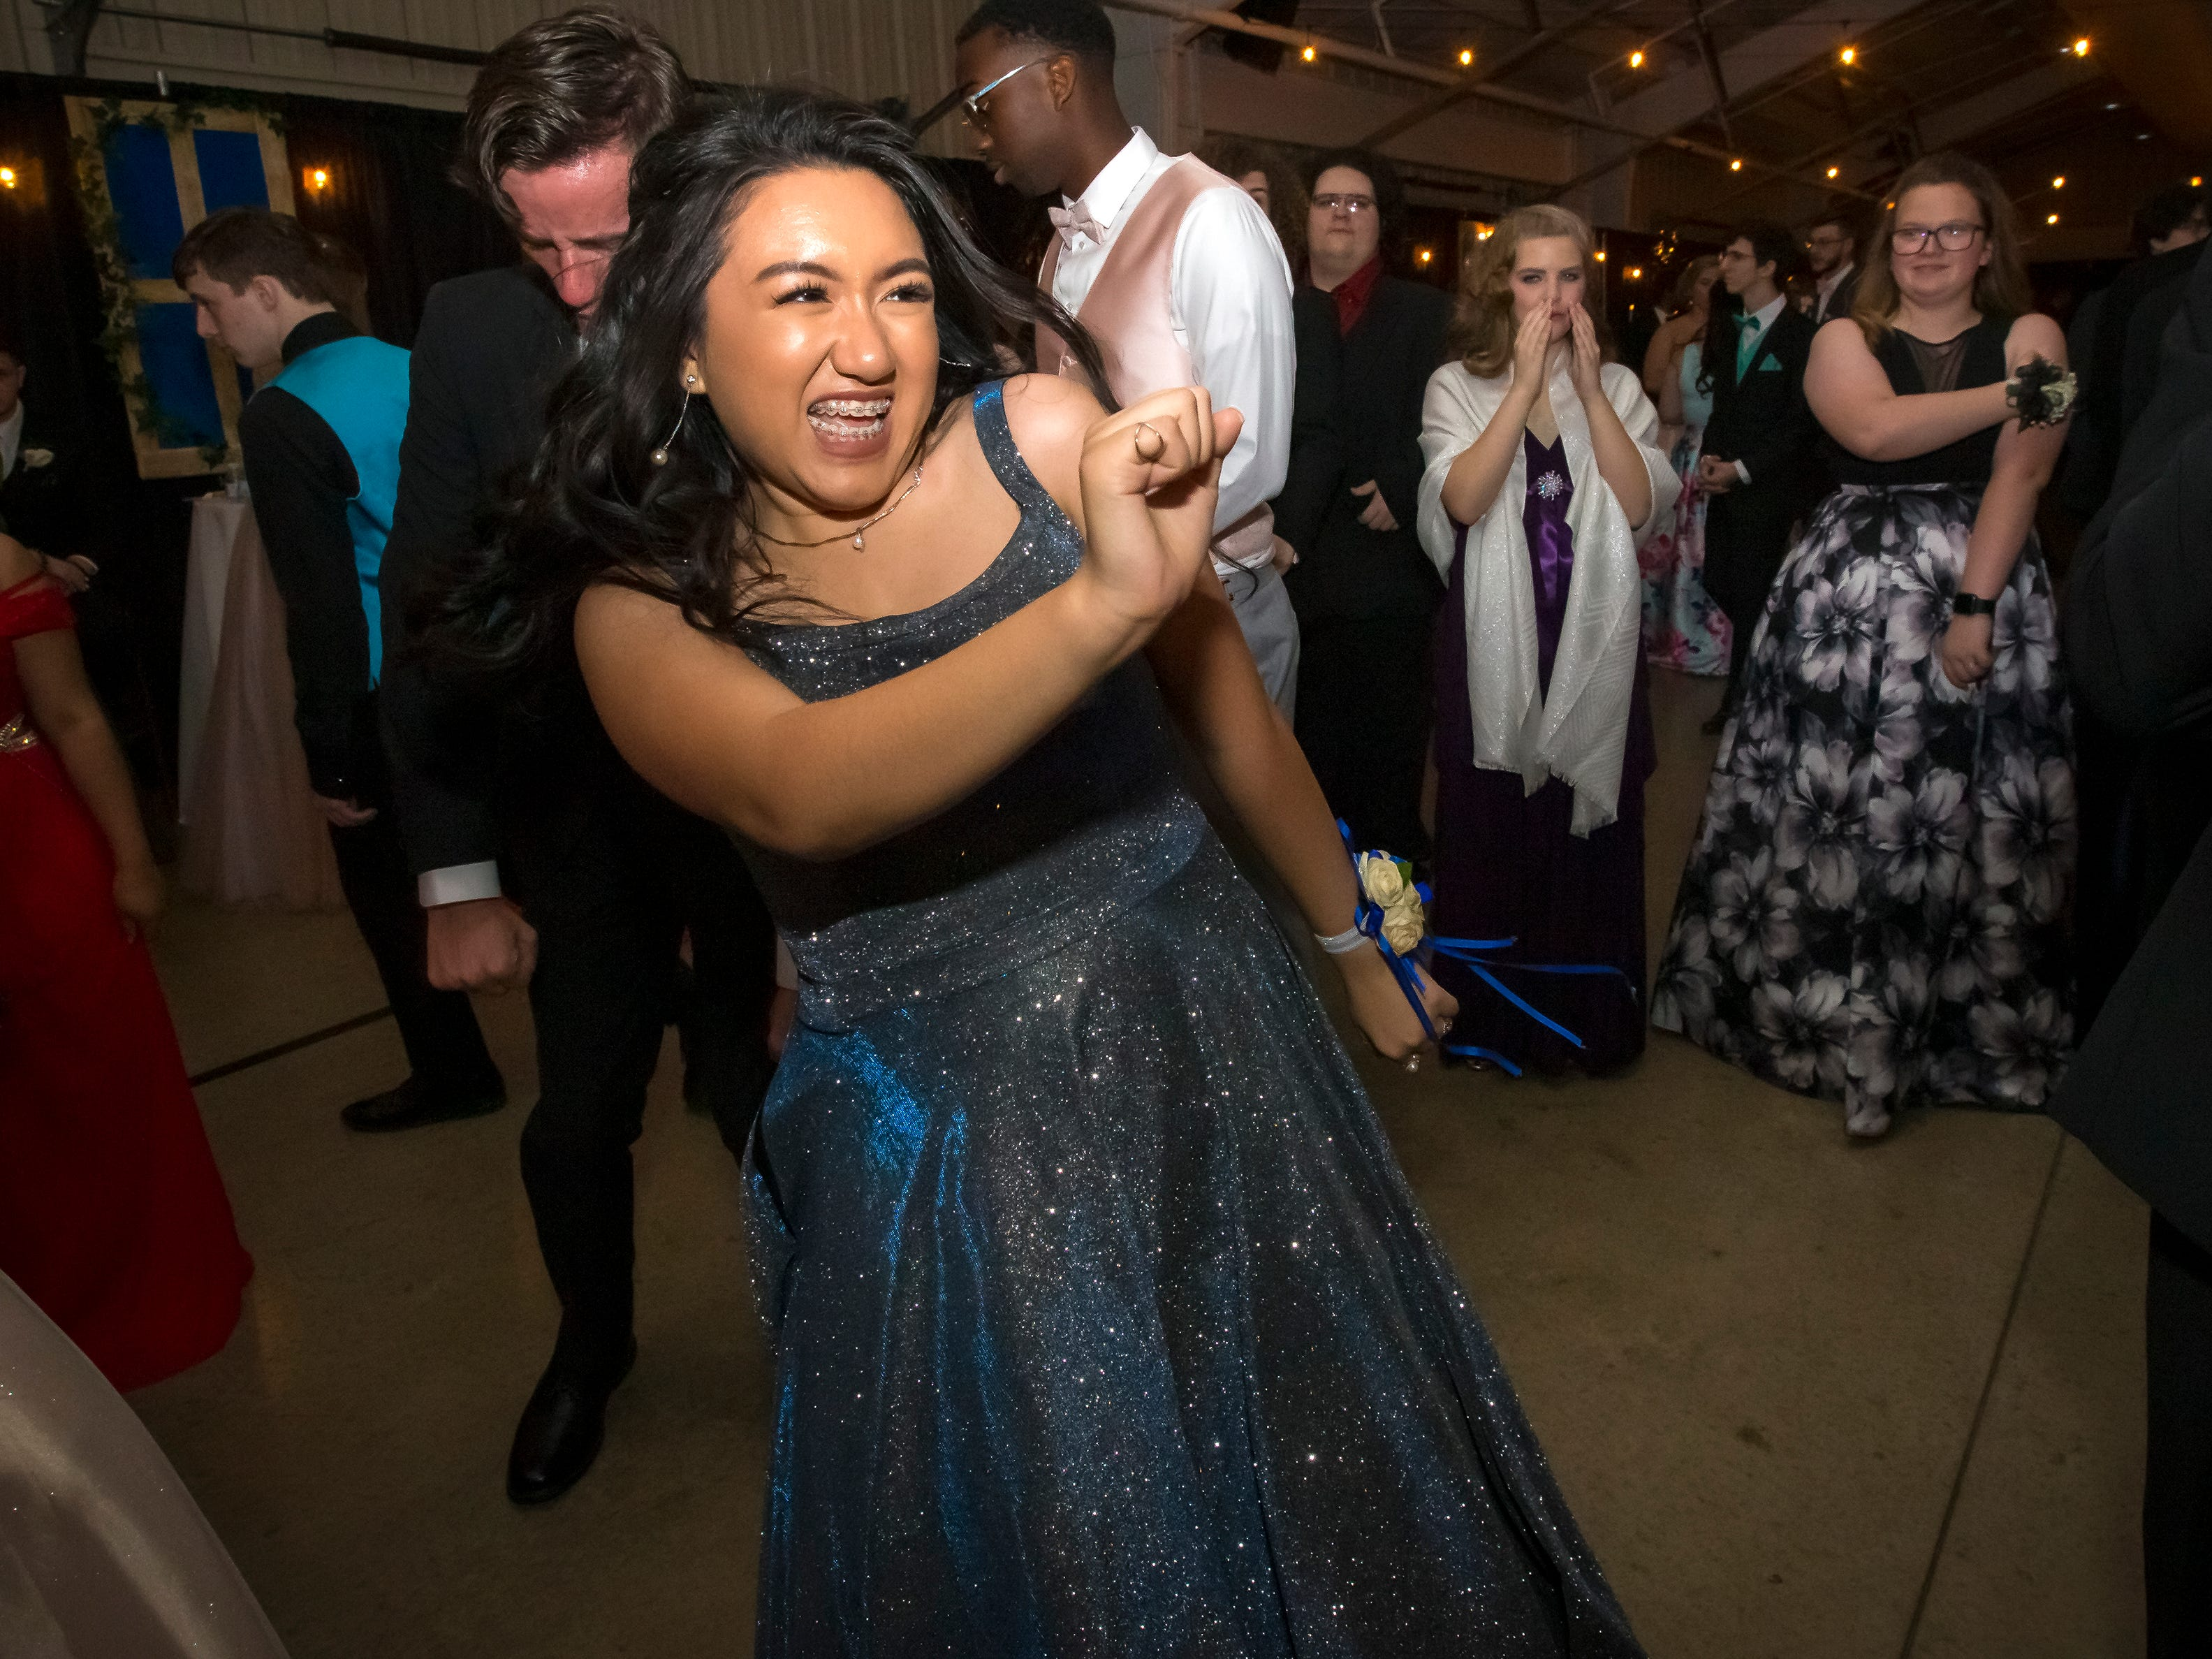 Oakland High School's prom was held at Lane Agri-Park in Murfreesboro Saturday, April, 27, 2019.